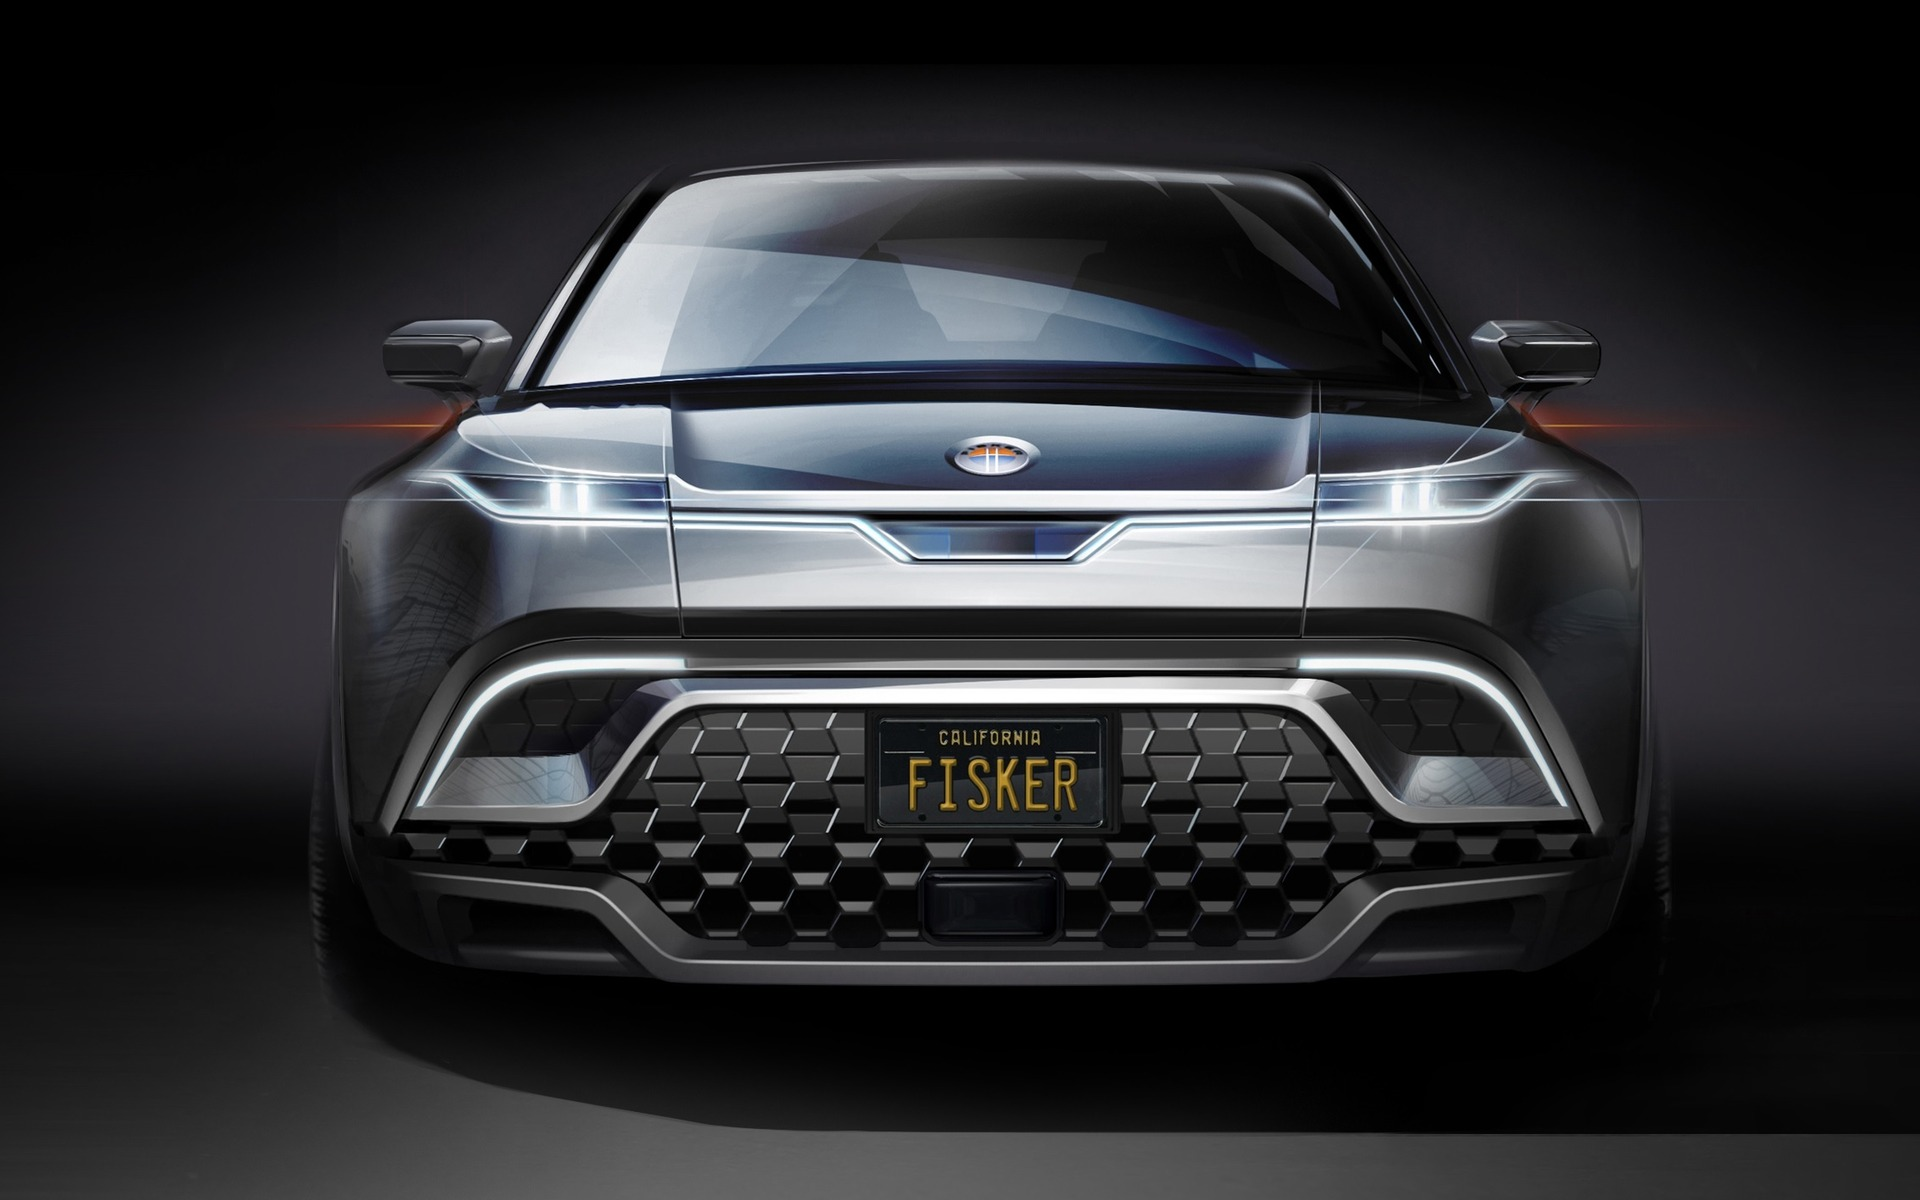 Preview of the future Fisker electric SUV